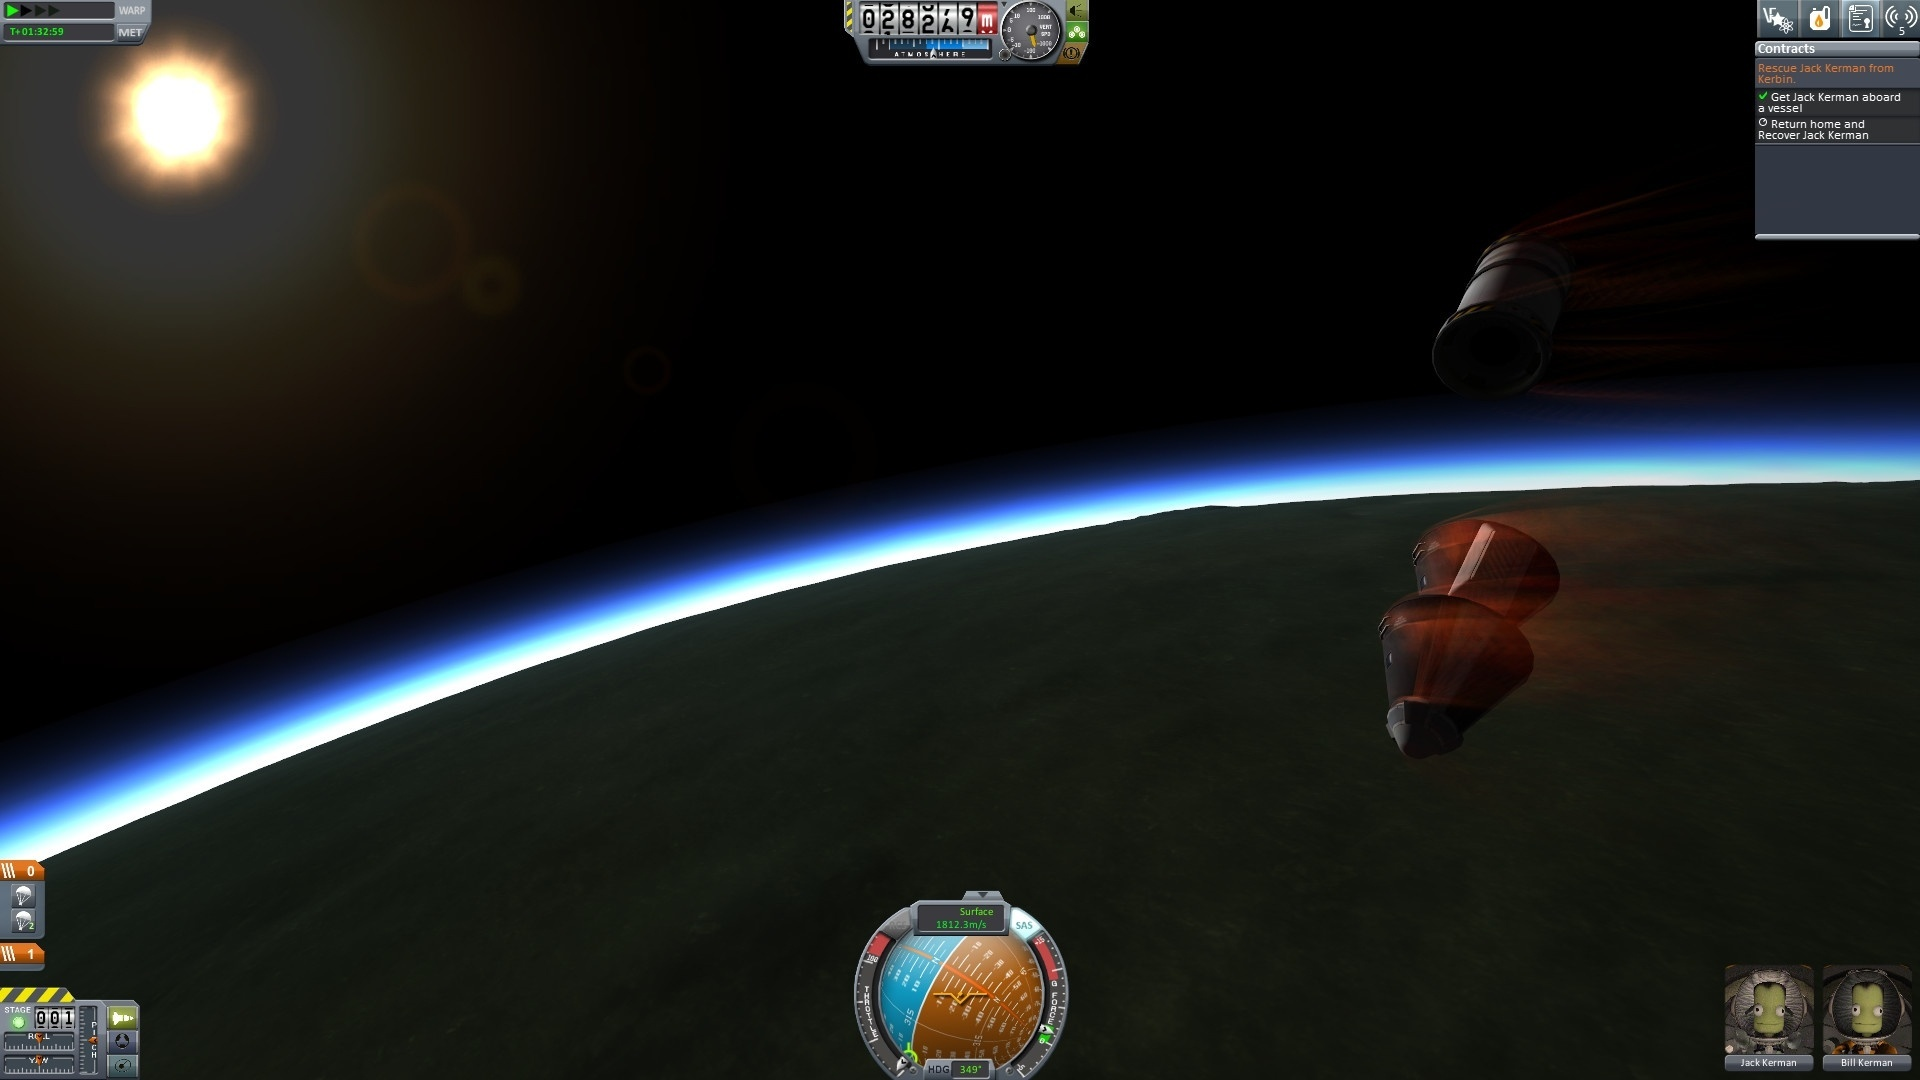 Kerbal Space Program Space Carrier - Pics about space